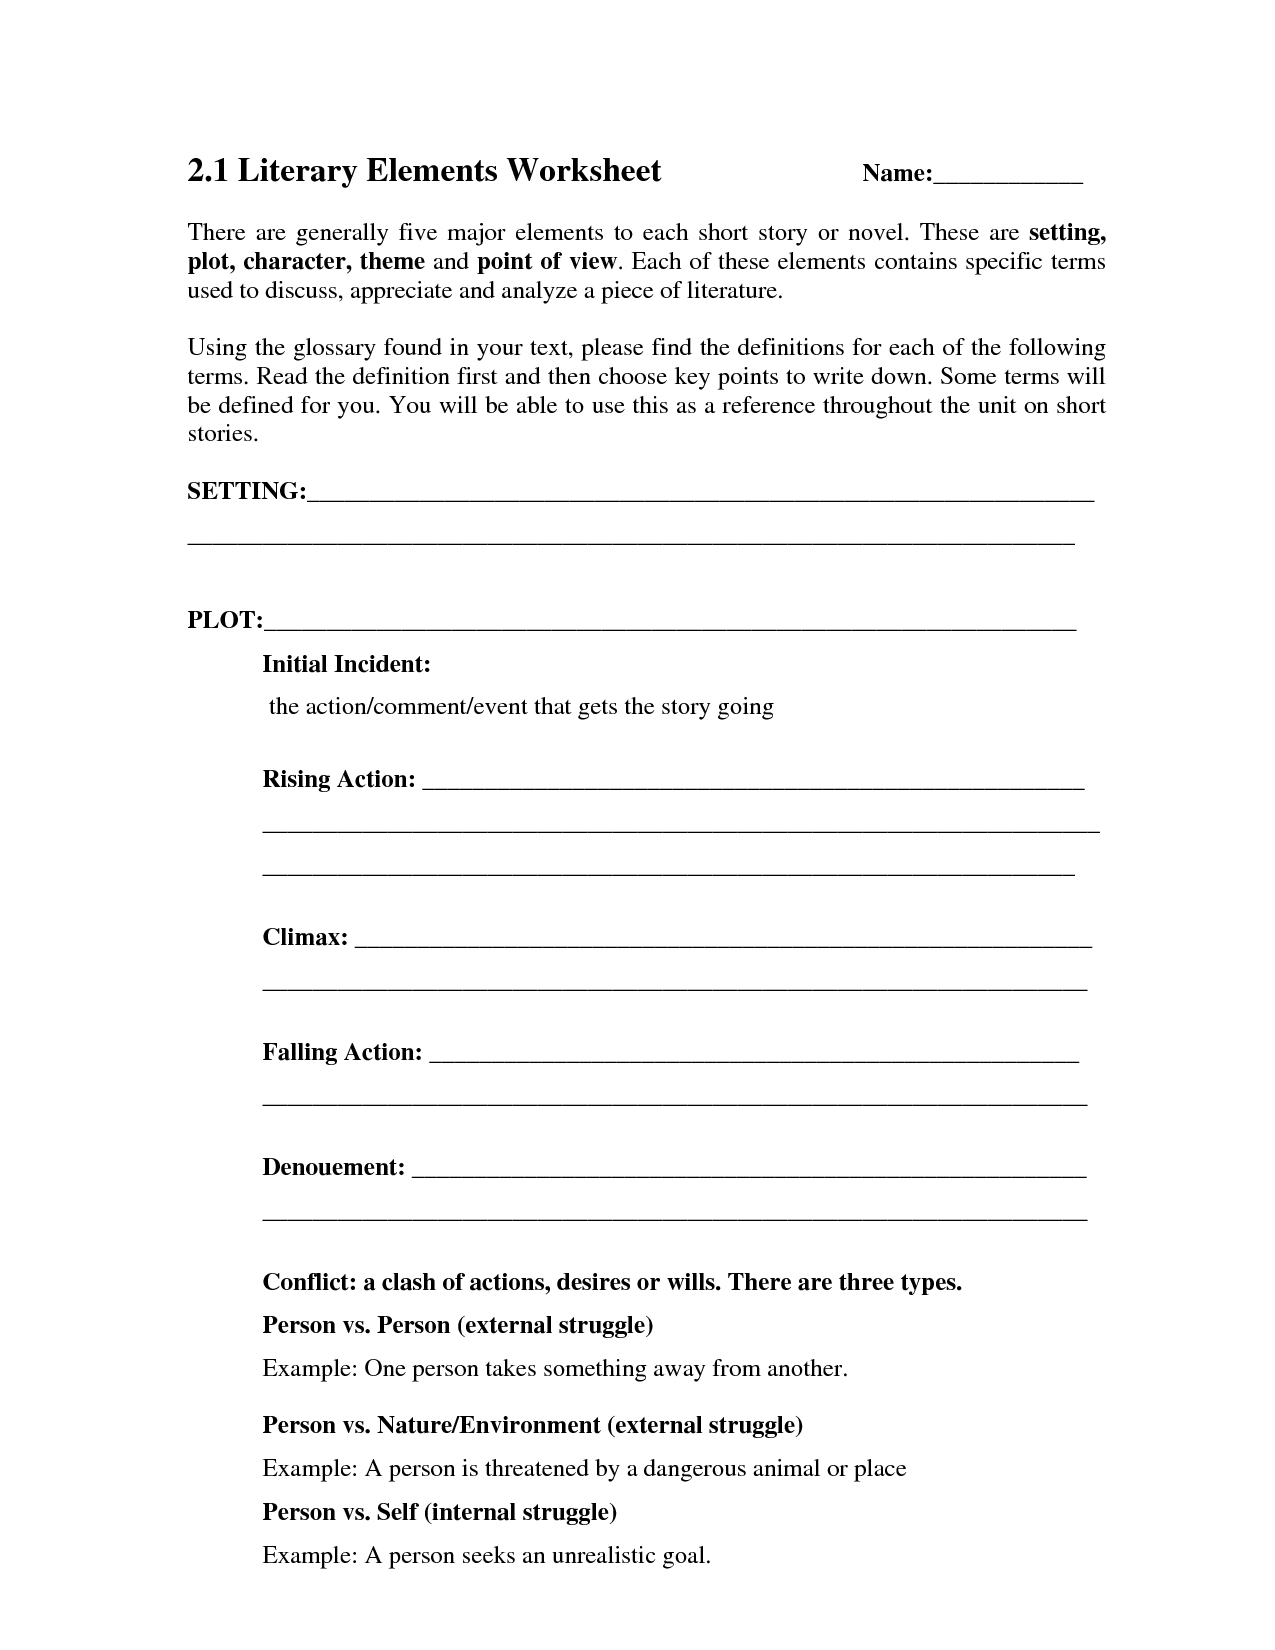 10 Best Images Of Short Story Elements Worksheet